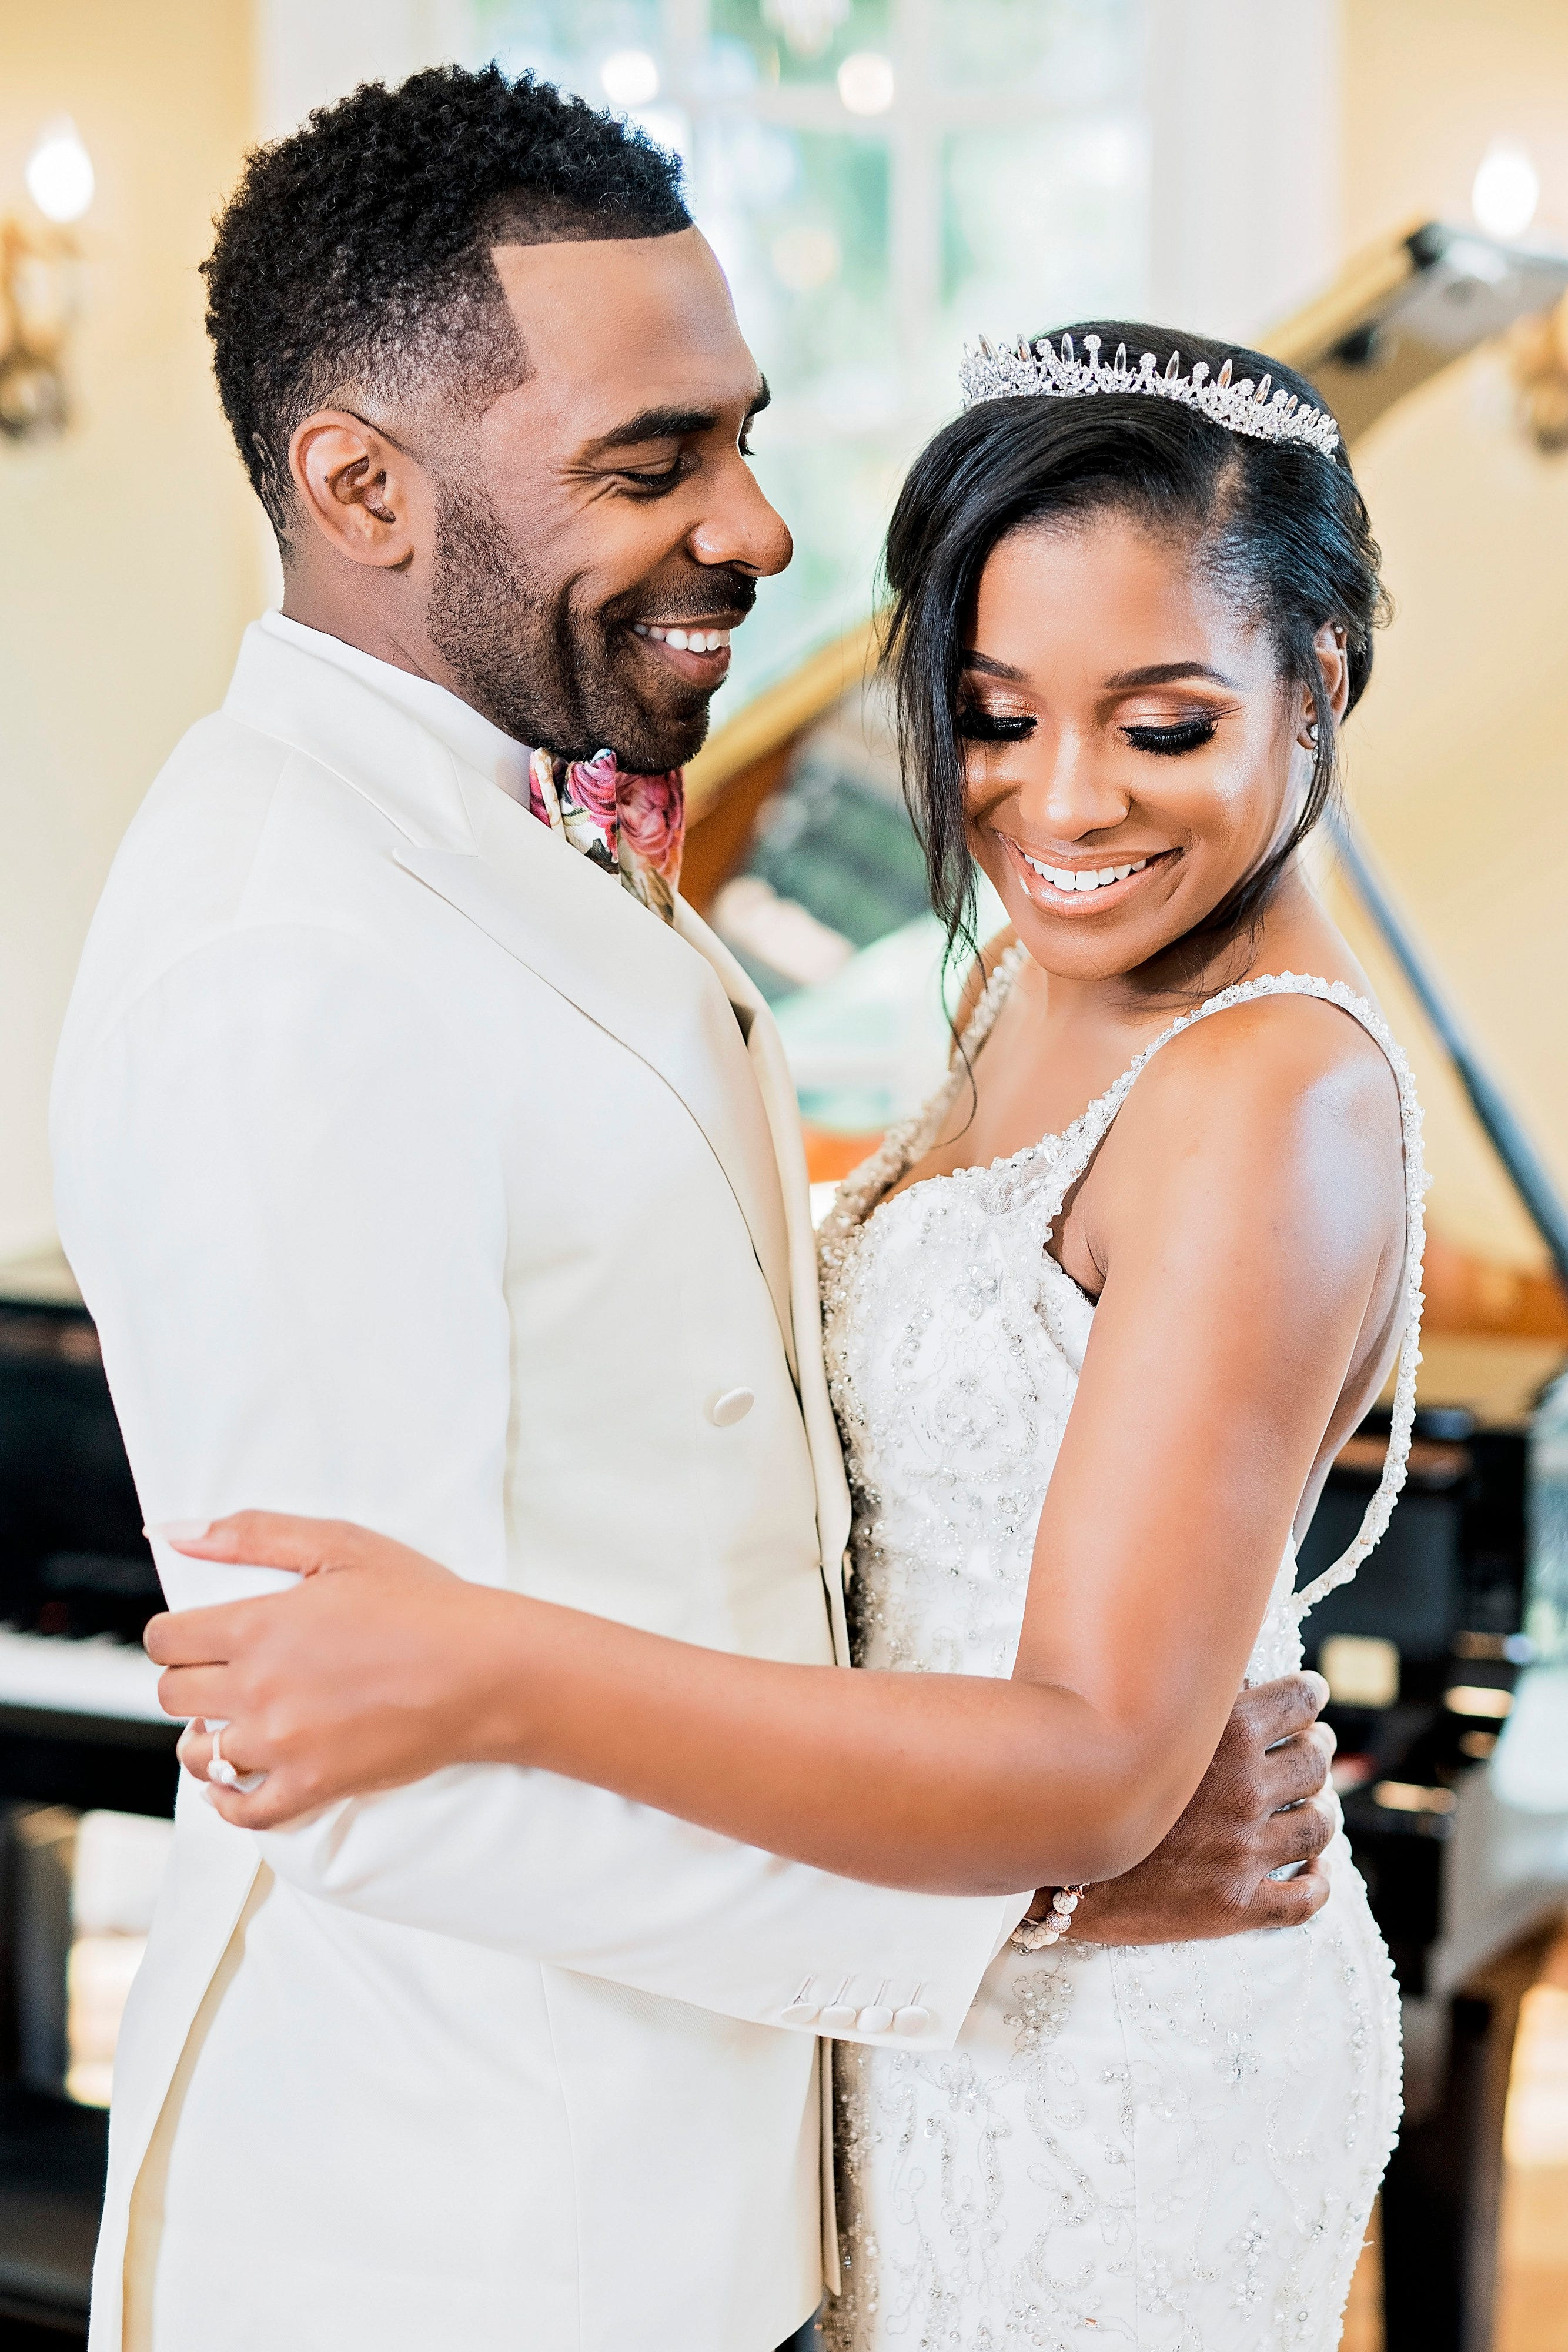 Smaller weddings, bigger price tags: How COVID-19 started a new trend in weddings